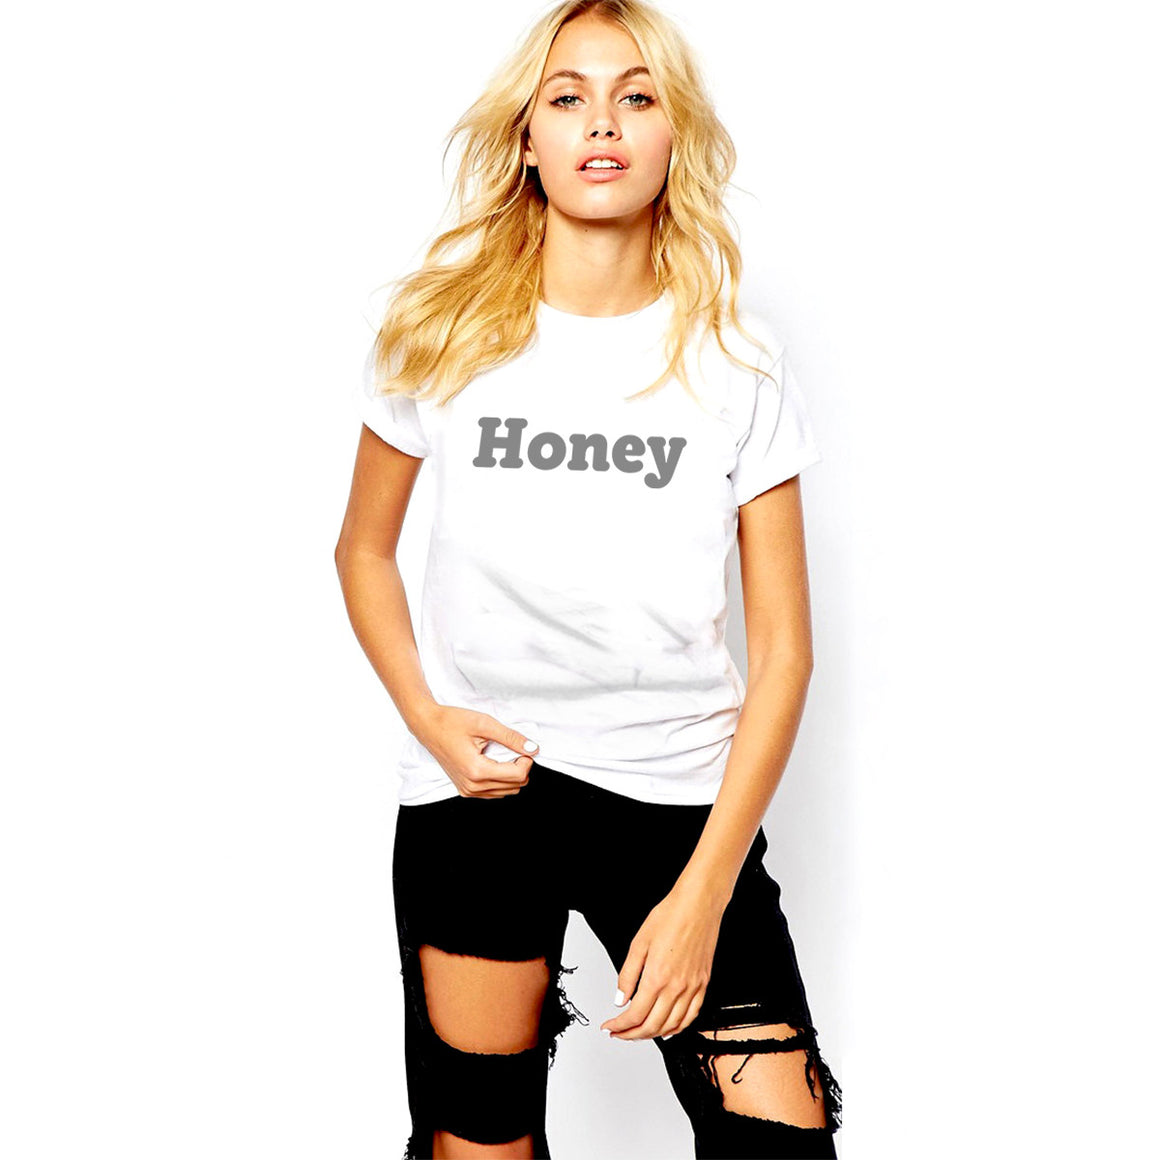 Honey Women's Crew Neck T-Shirt